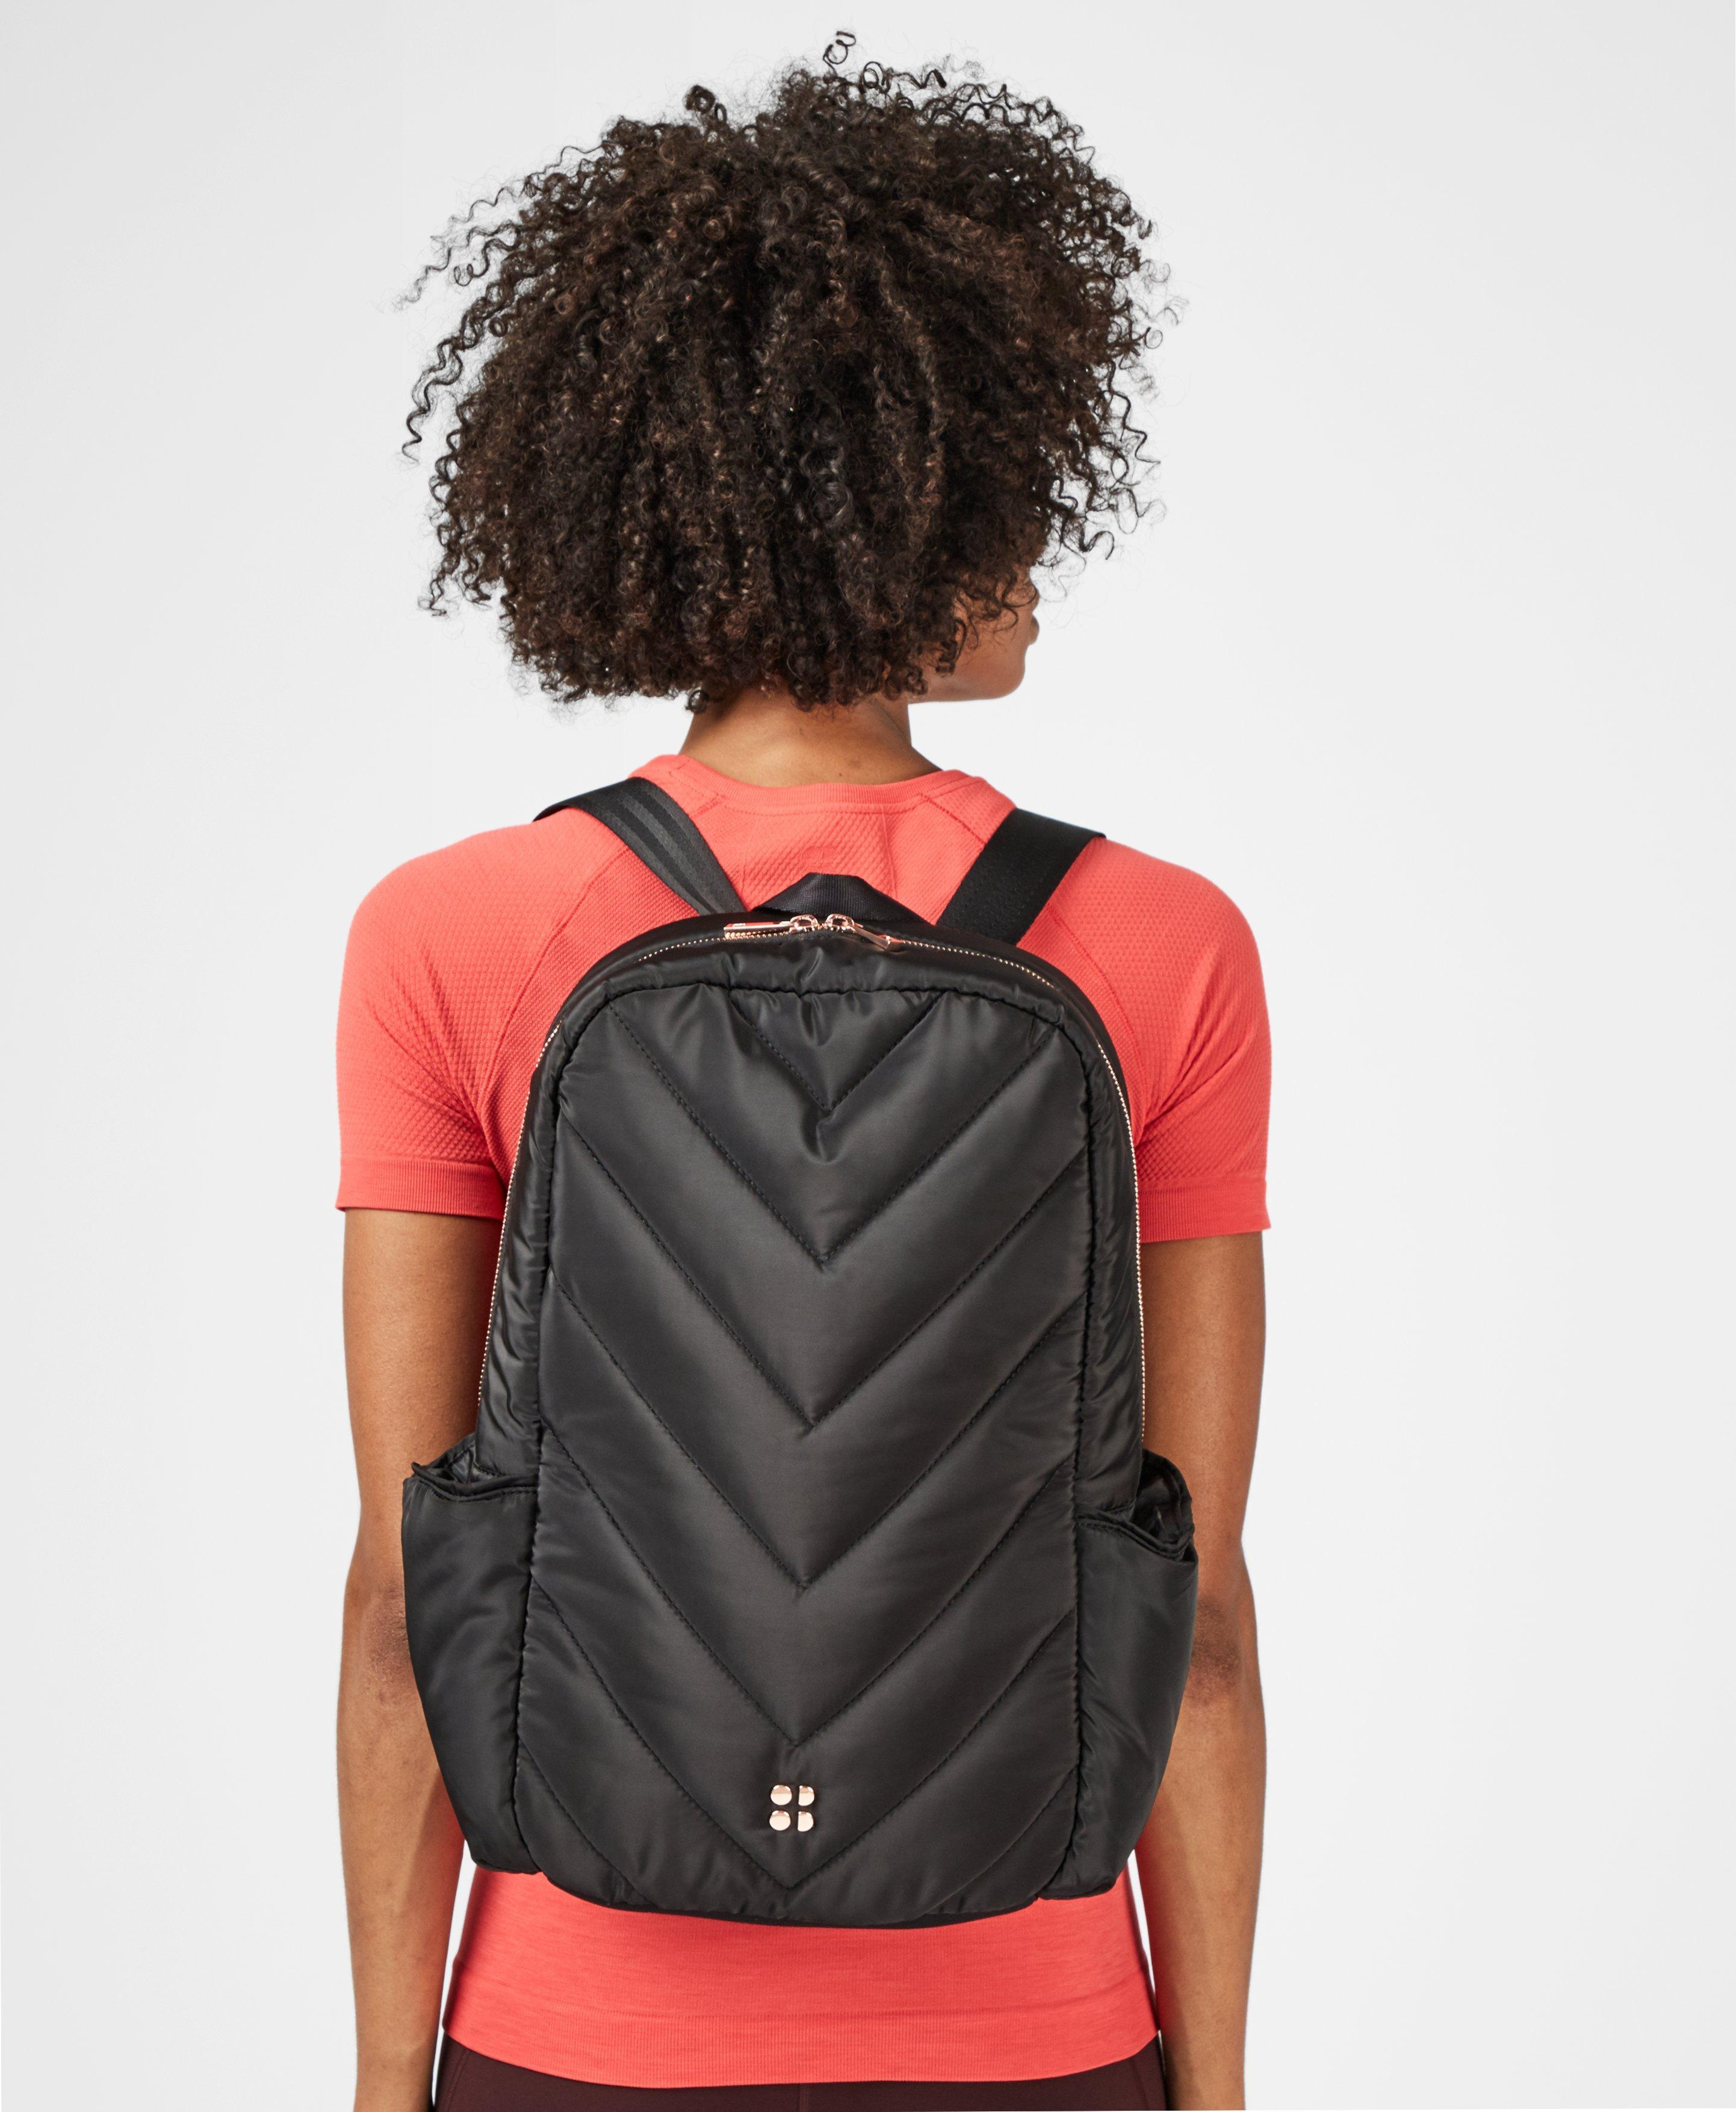 A sleek new update to the runners favourite backpack. Designed in super lightweight breathable fabric for comfort on the go, with adjustable padded shoulder straps, reflective panels and a secure chest and hip strap. With 6x compartments including a zip inner pocket, you can fit a laptop inside and your water bottle in the outside pocket. Hello dream commute.